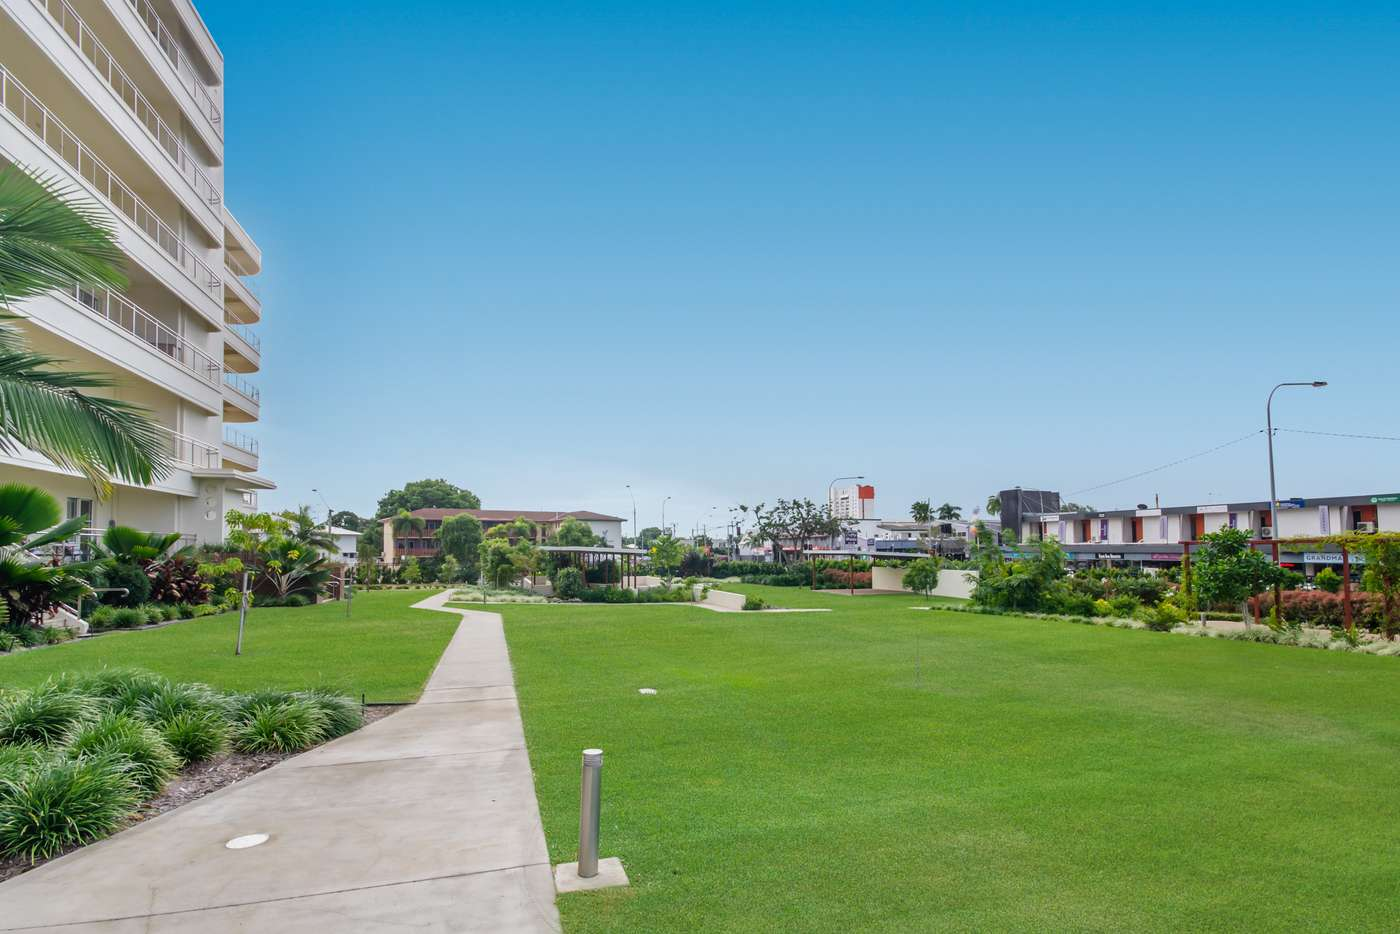 Main view of Homely apartment listing, 52/45 Gregory Street, North Ward QLD 4810